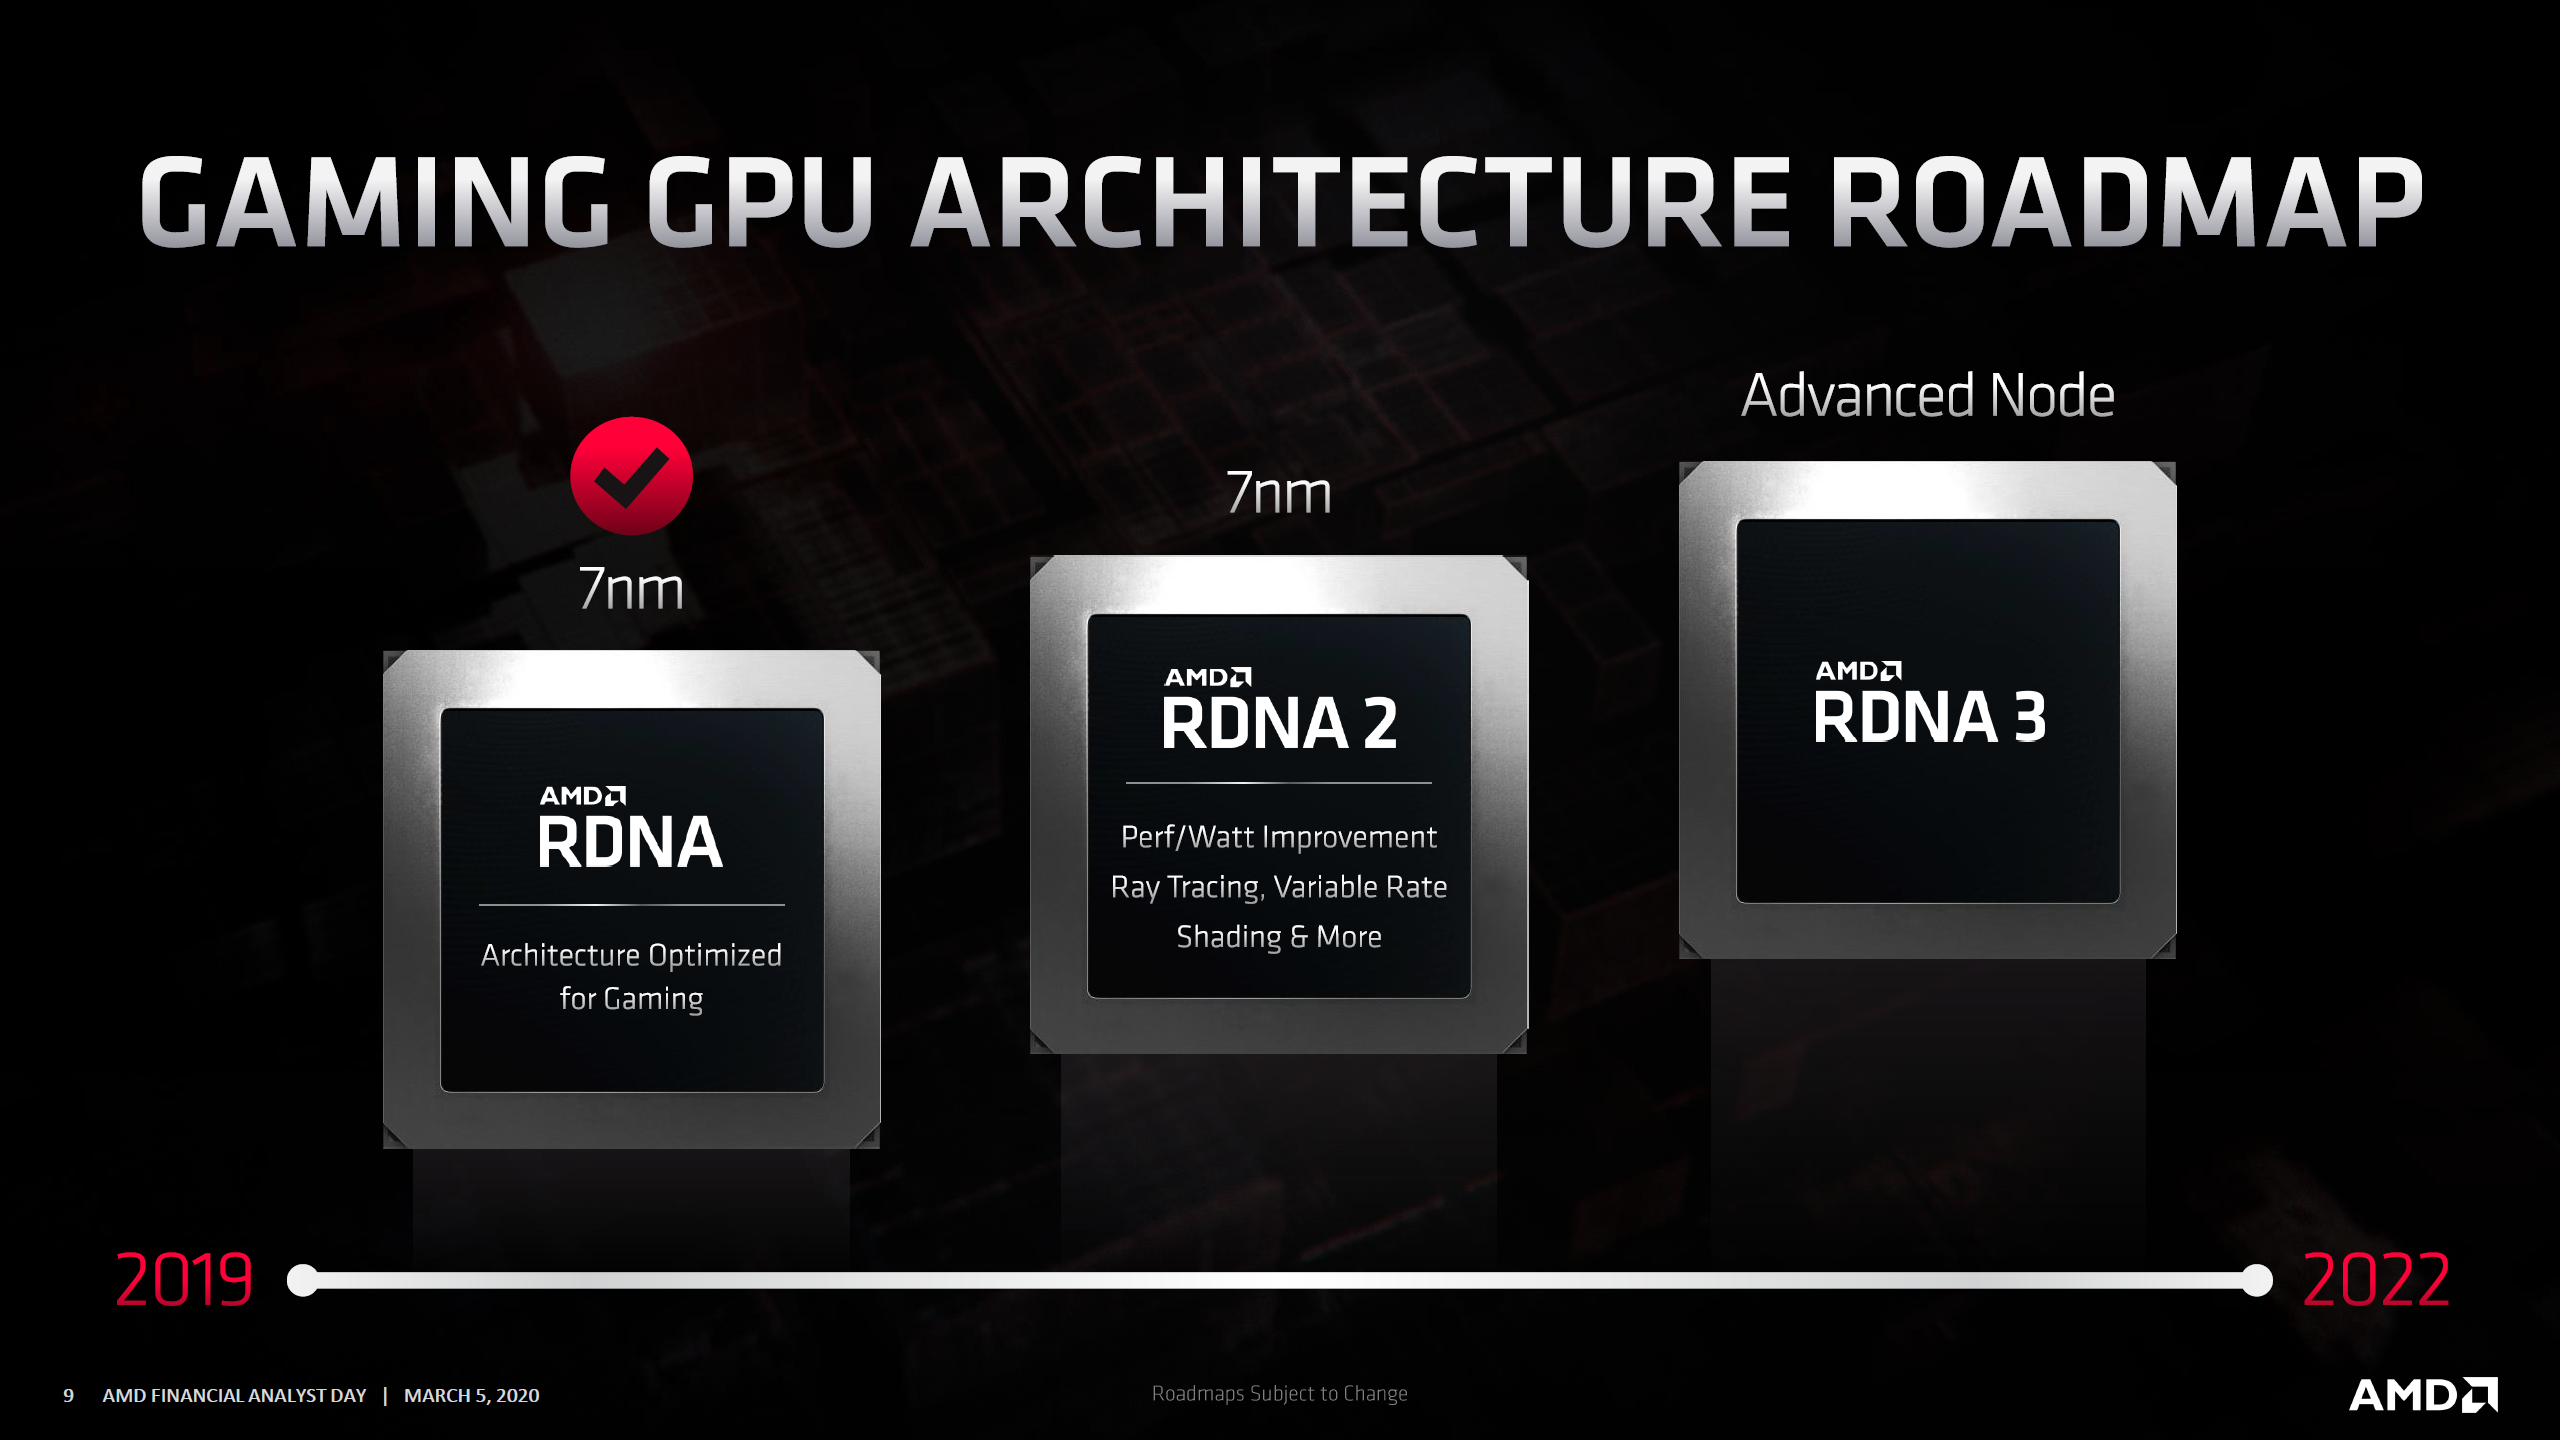 Amd Ryzen 4000 Zen 3 Cpus Unveil On 8th October Radeon Rx 6000 Series Rdna 2 Gpu Unveil On 28th October